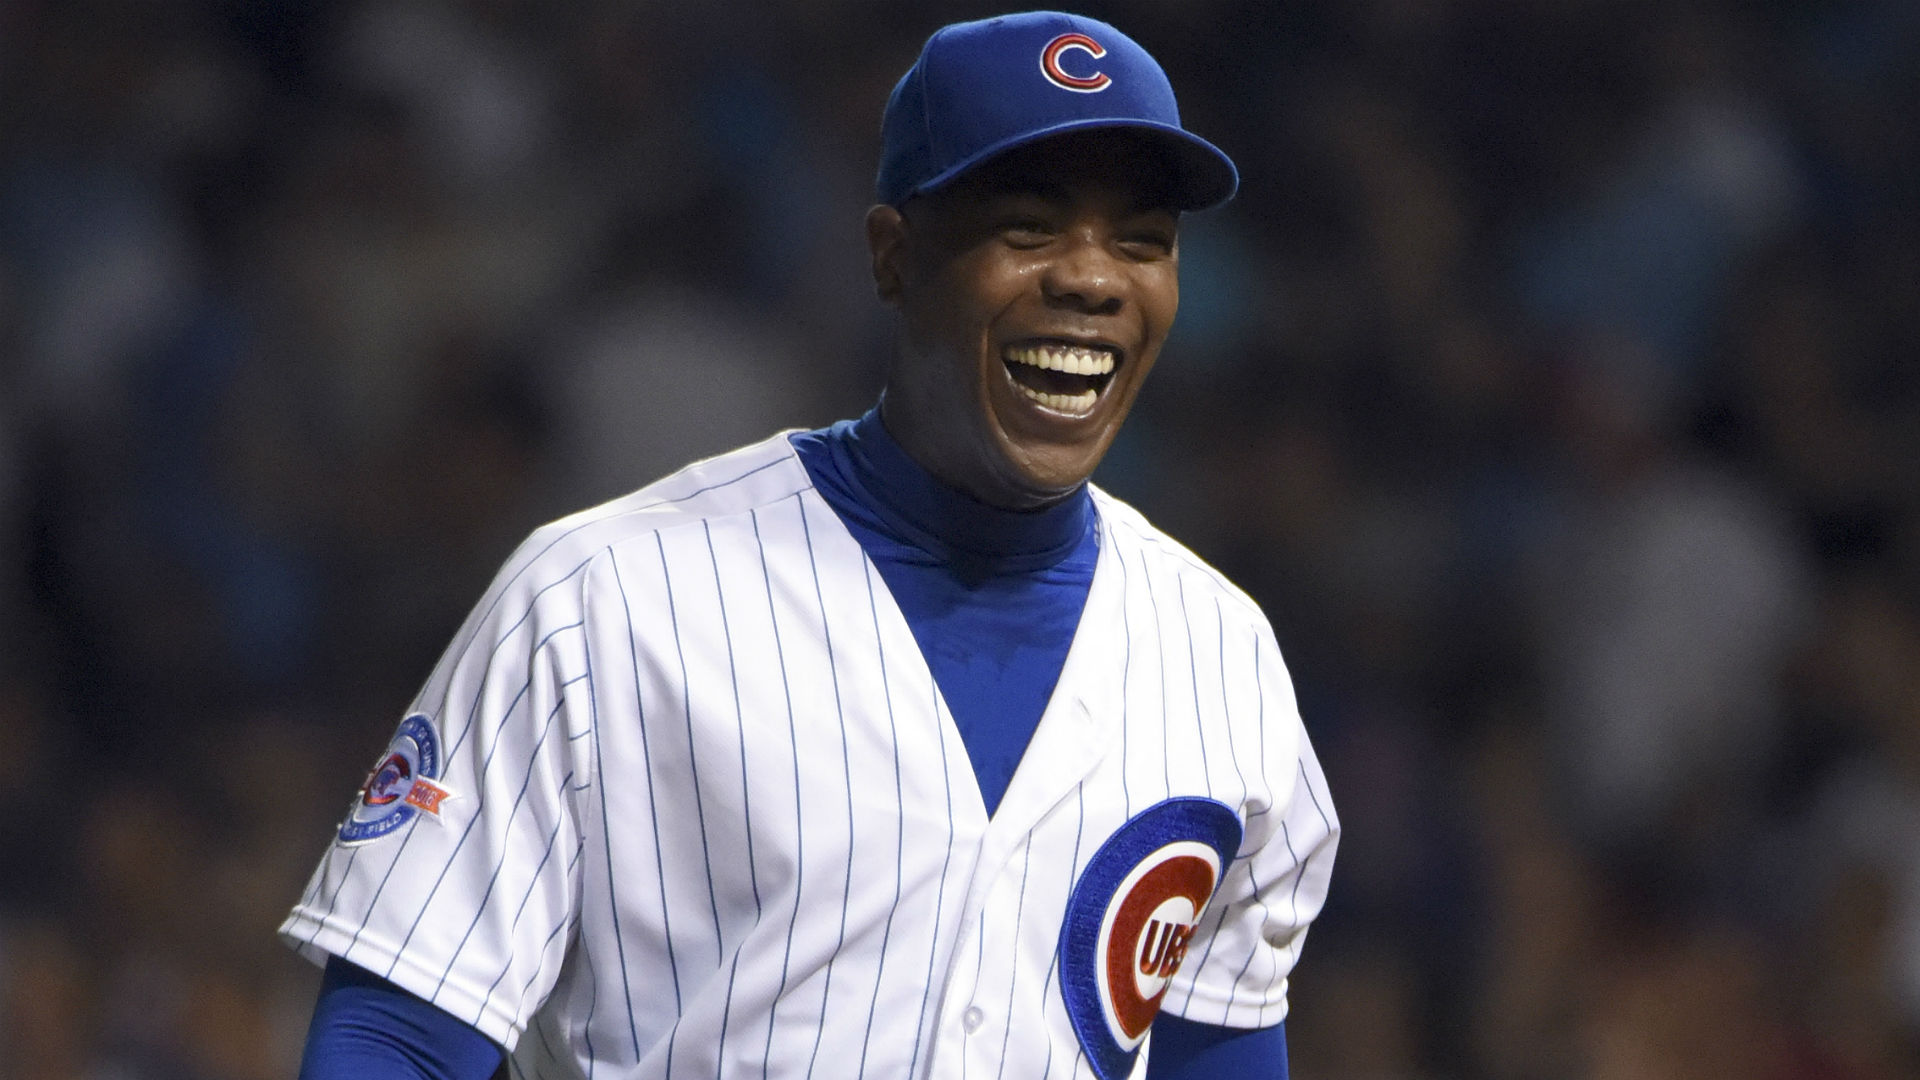 Cubs' soundtrack for Aroldis Chapman is sick or very dumb